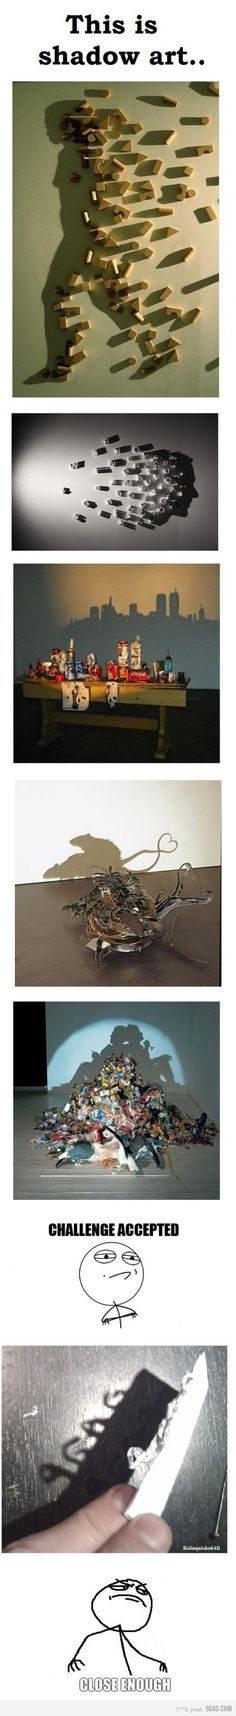 This is shadow art. Amazing!